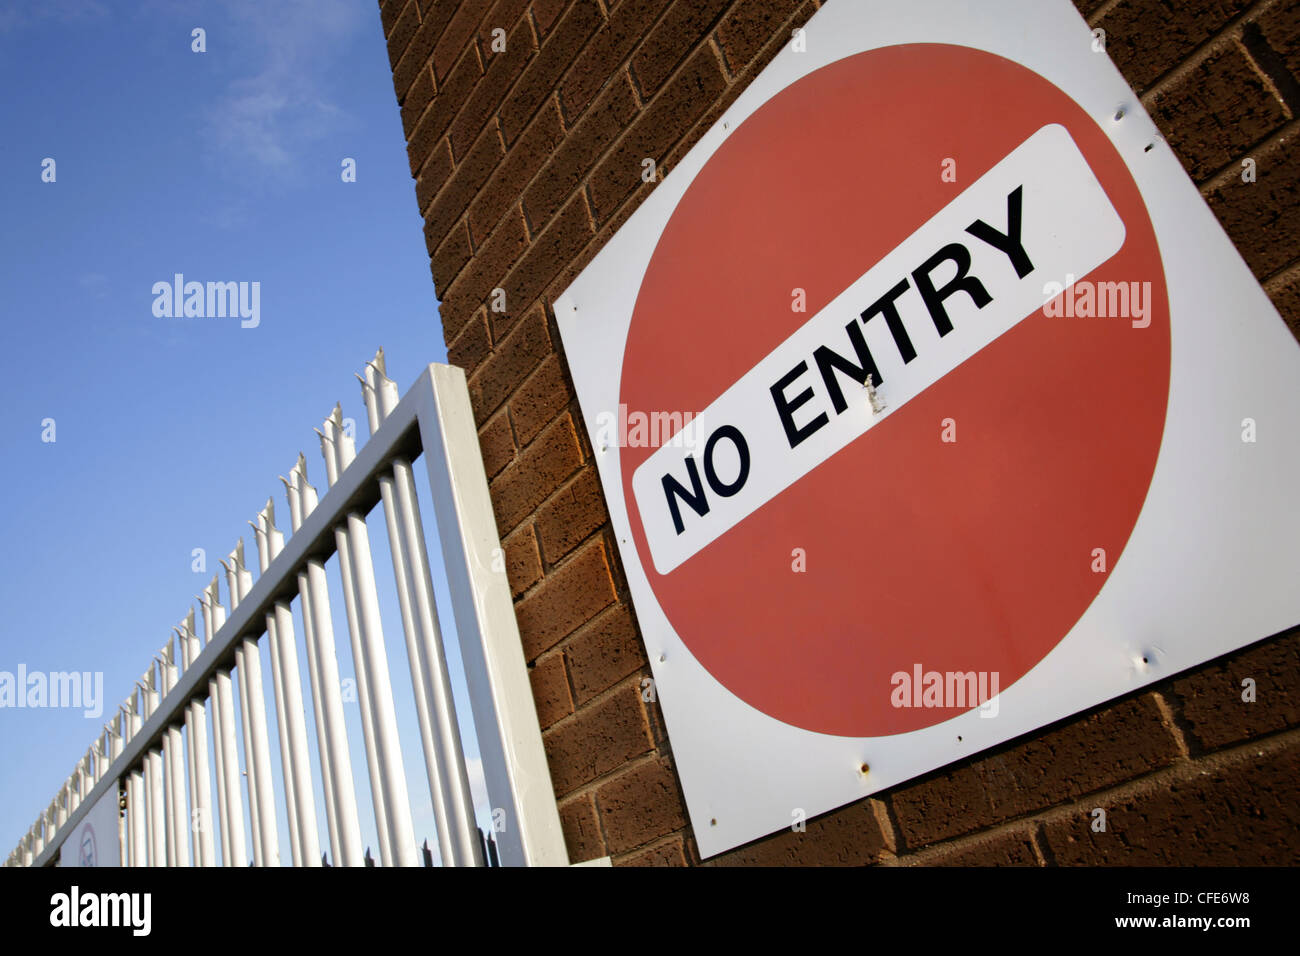 No entry sign next to steel security fencing. - Stock Image